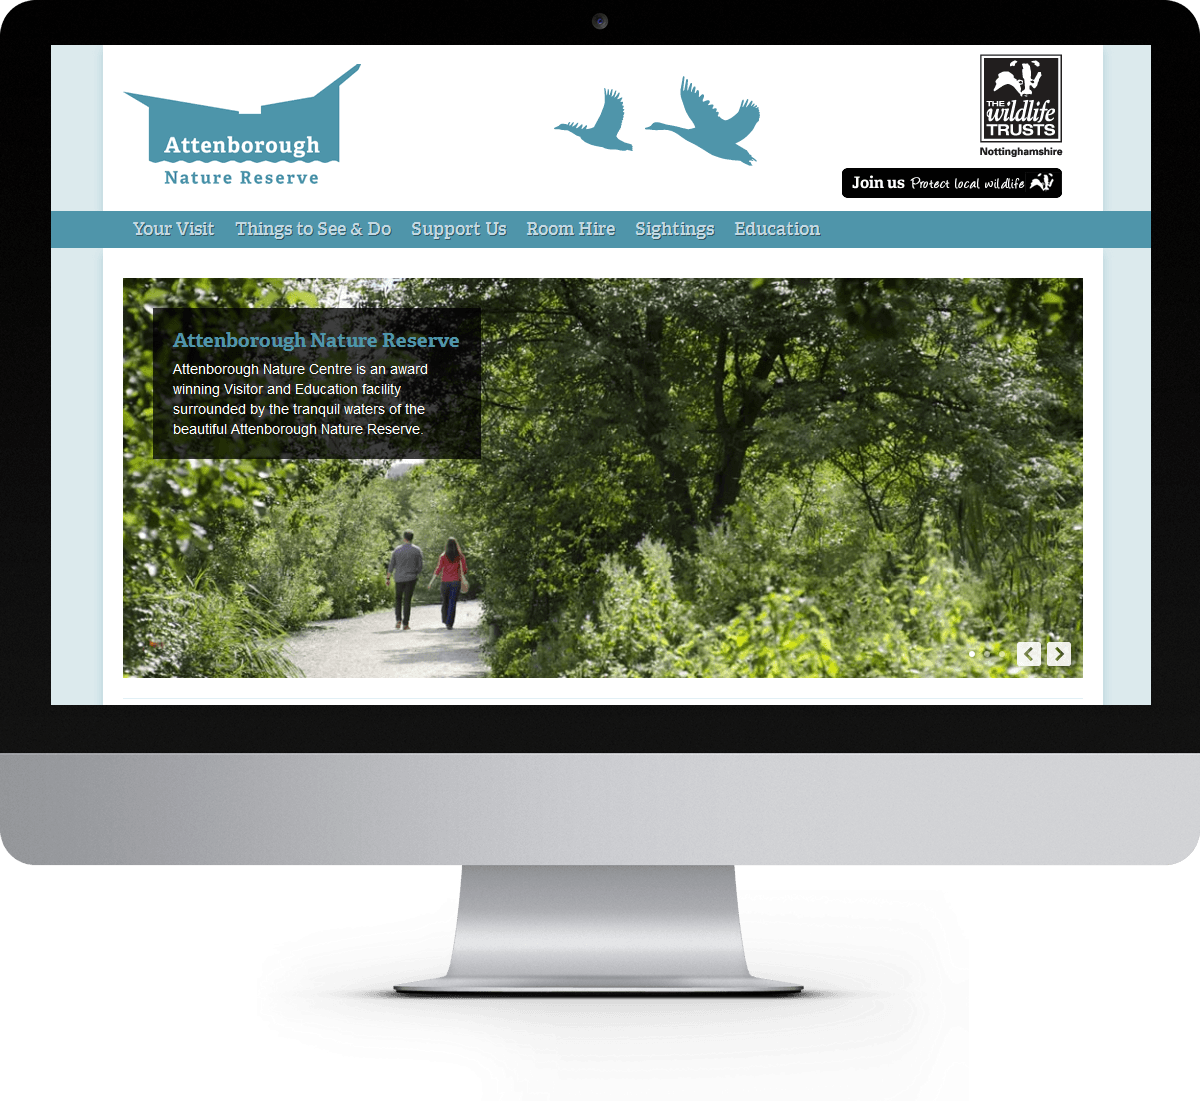 Attenborough Nature Reserve website